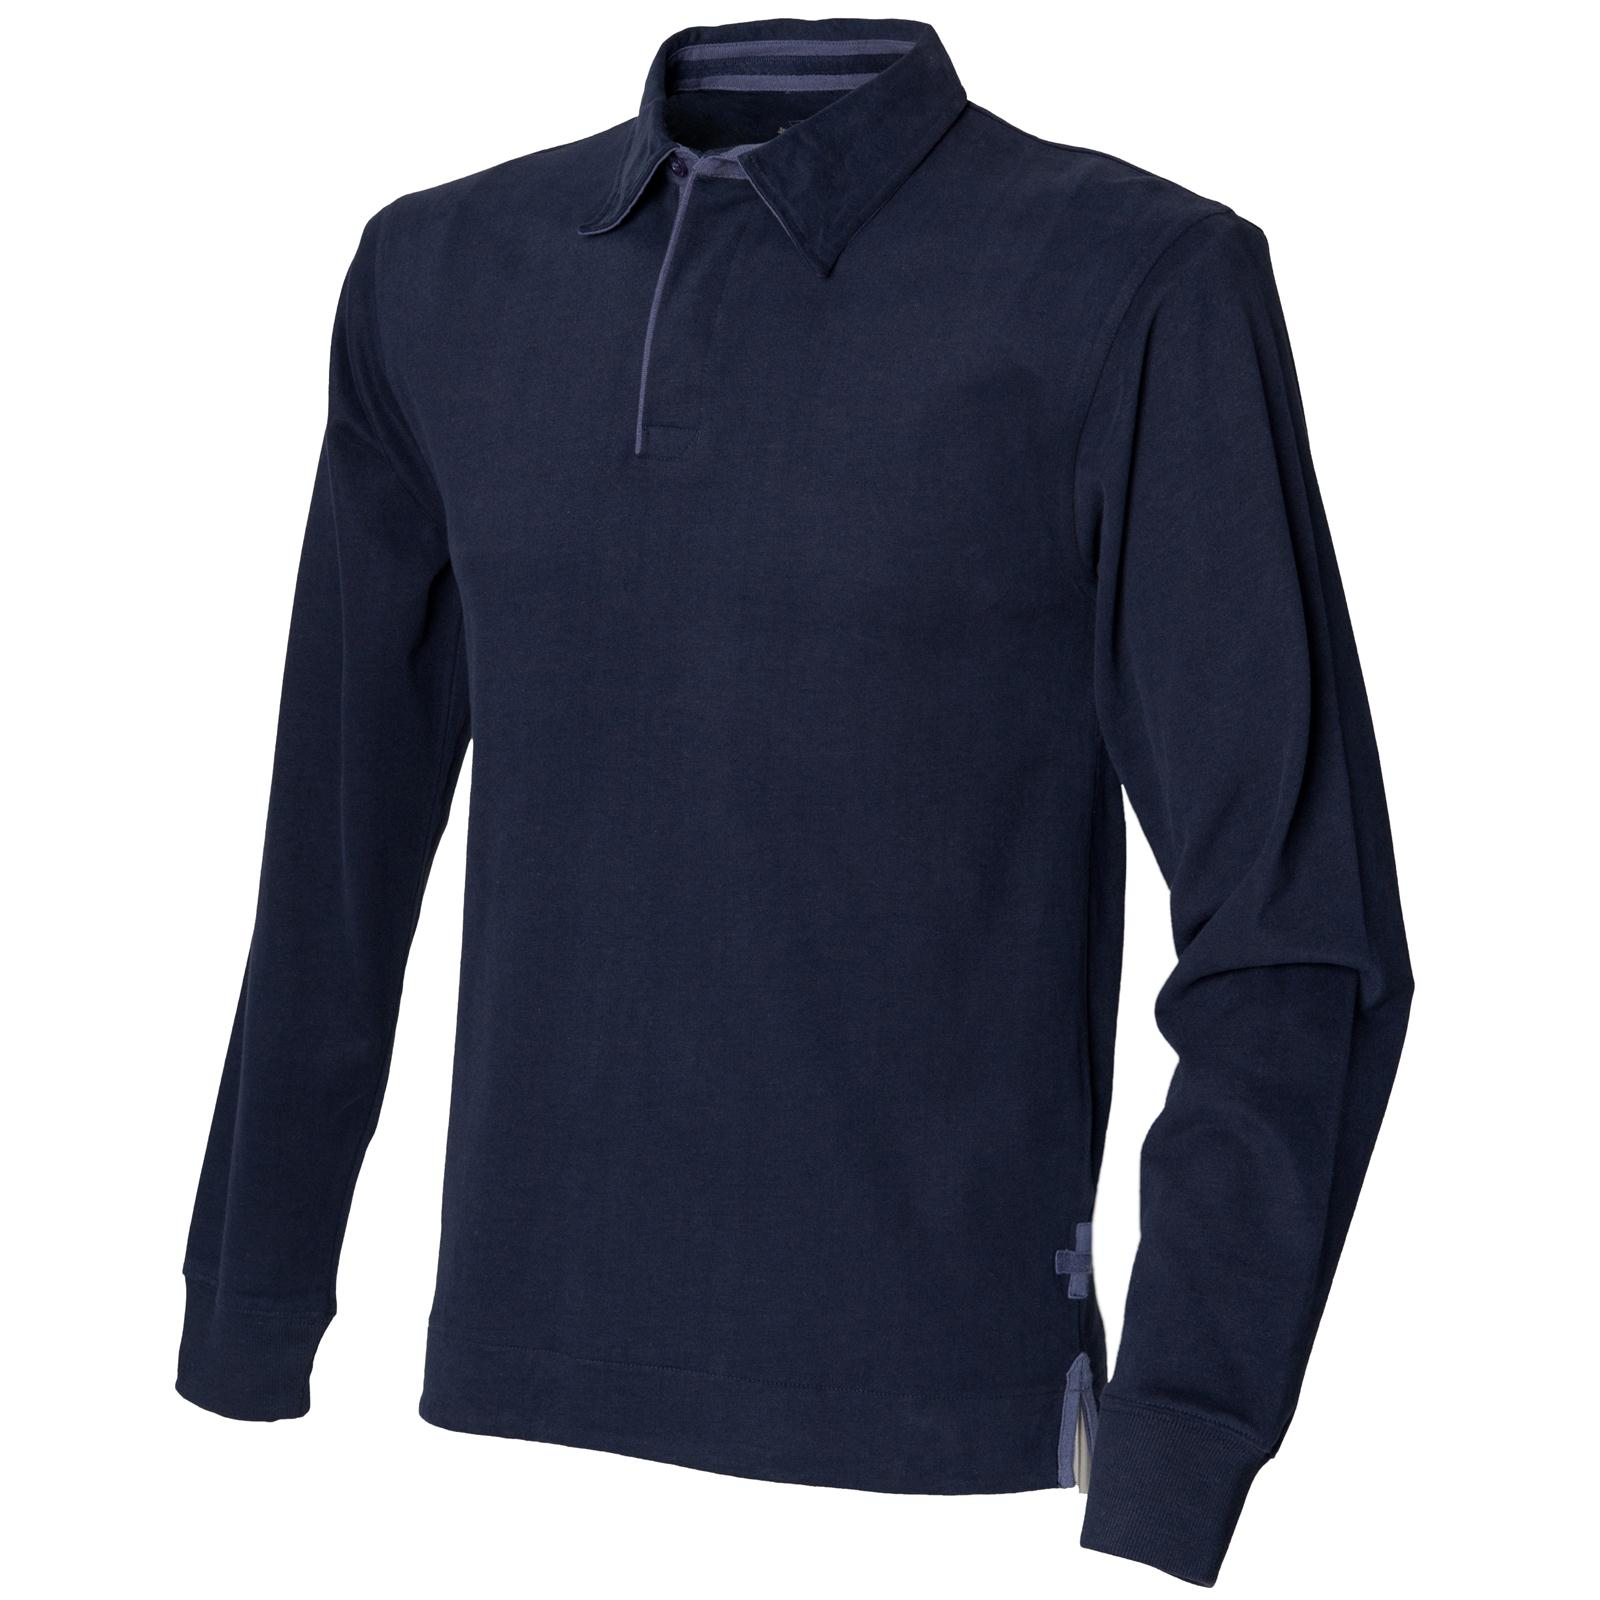 Super Scrum Rugby Shirt In Flyhalf Navy Stripe: New FRONT ROW Mens Super Soft Long Sleeve Rugby Style